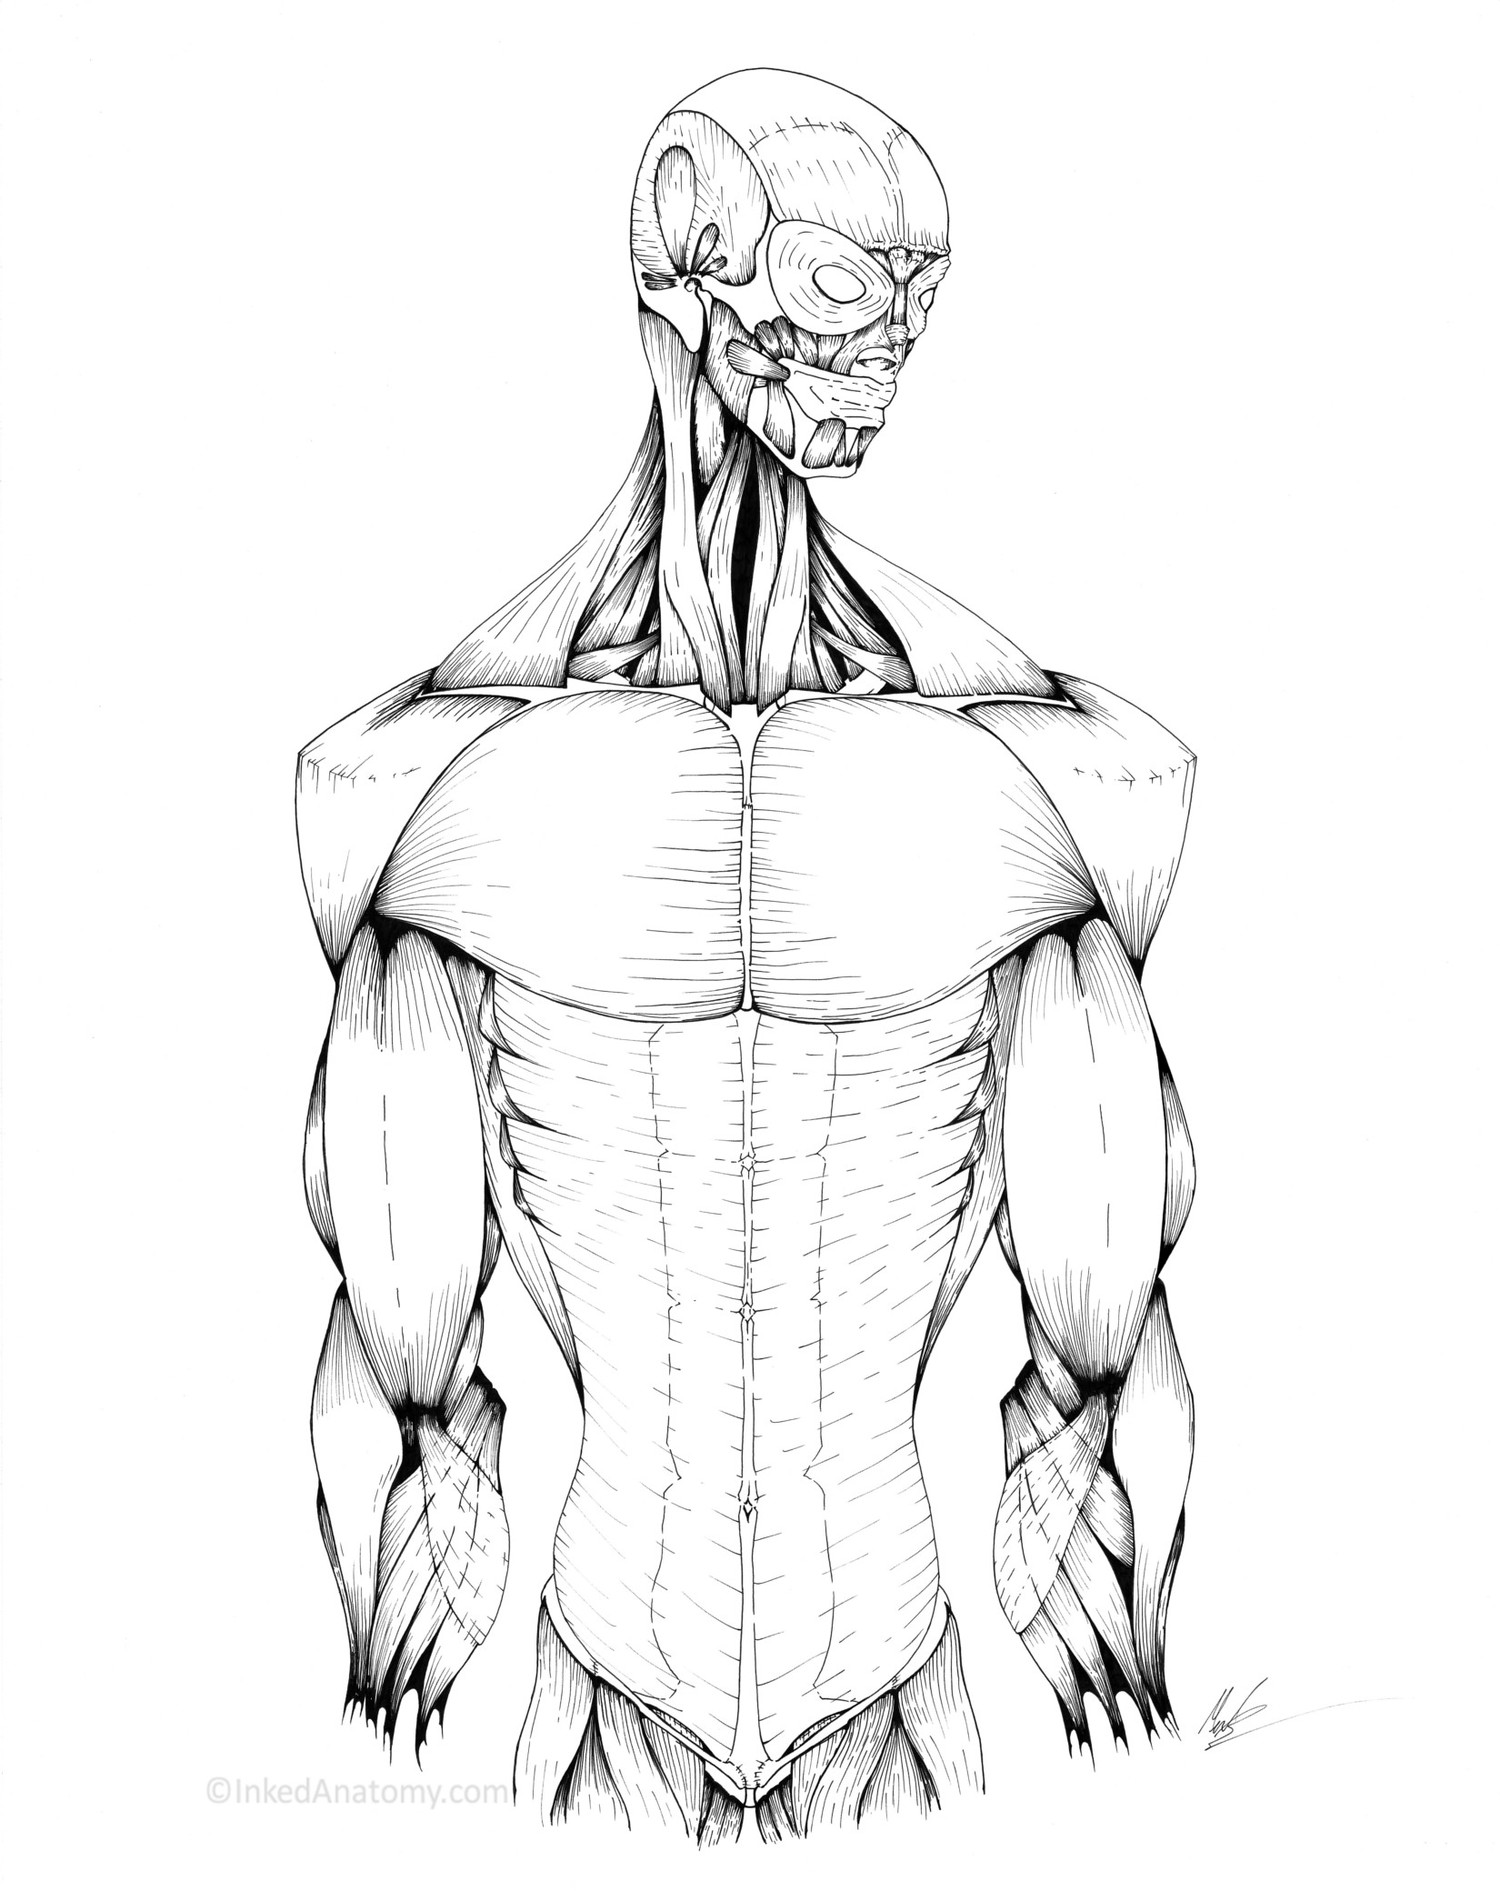 Full Body Collection Inked Anatomy